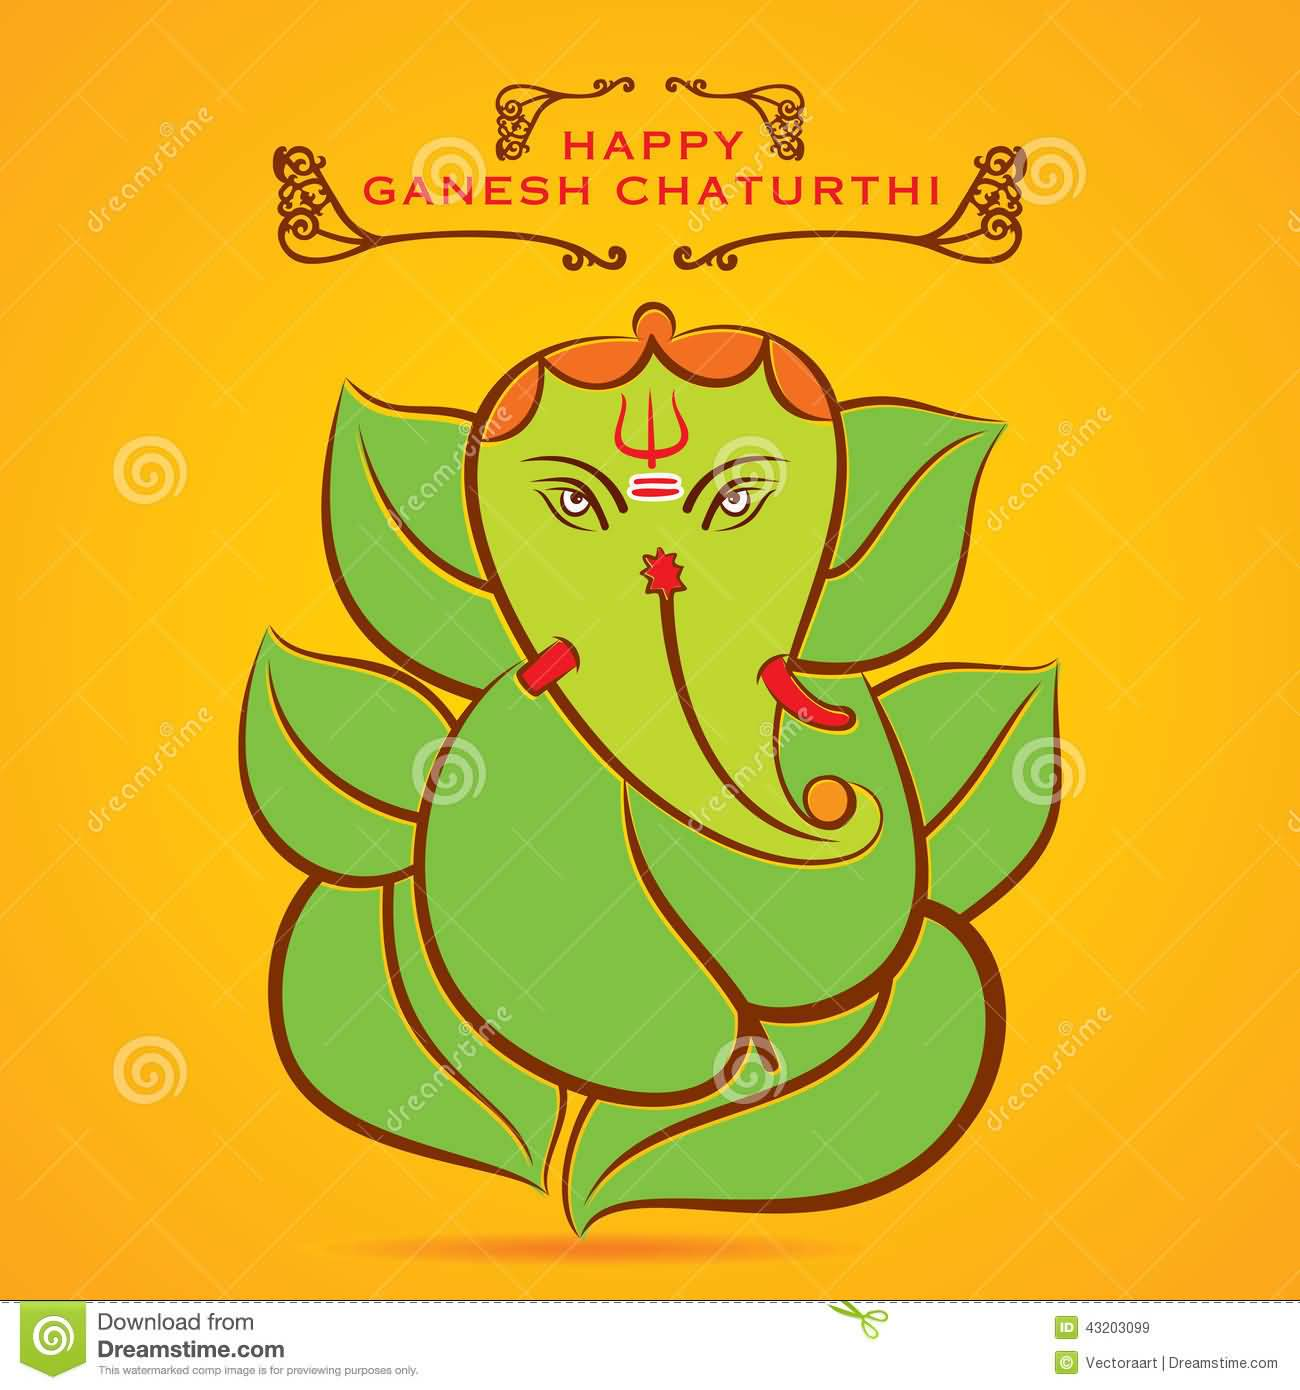 50 very beautiful ganesh chaturthi greeting card pictures and images happy ganesh chaturthi eco friendly lord ganesha picture on greeting card kristyandbryce Images